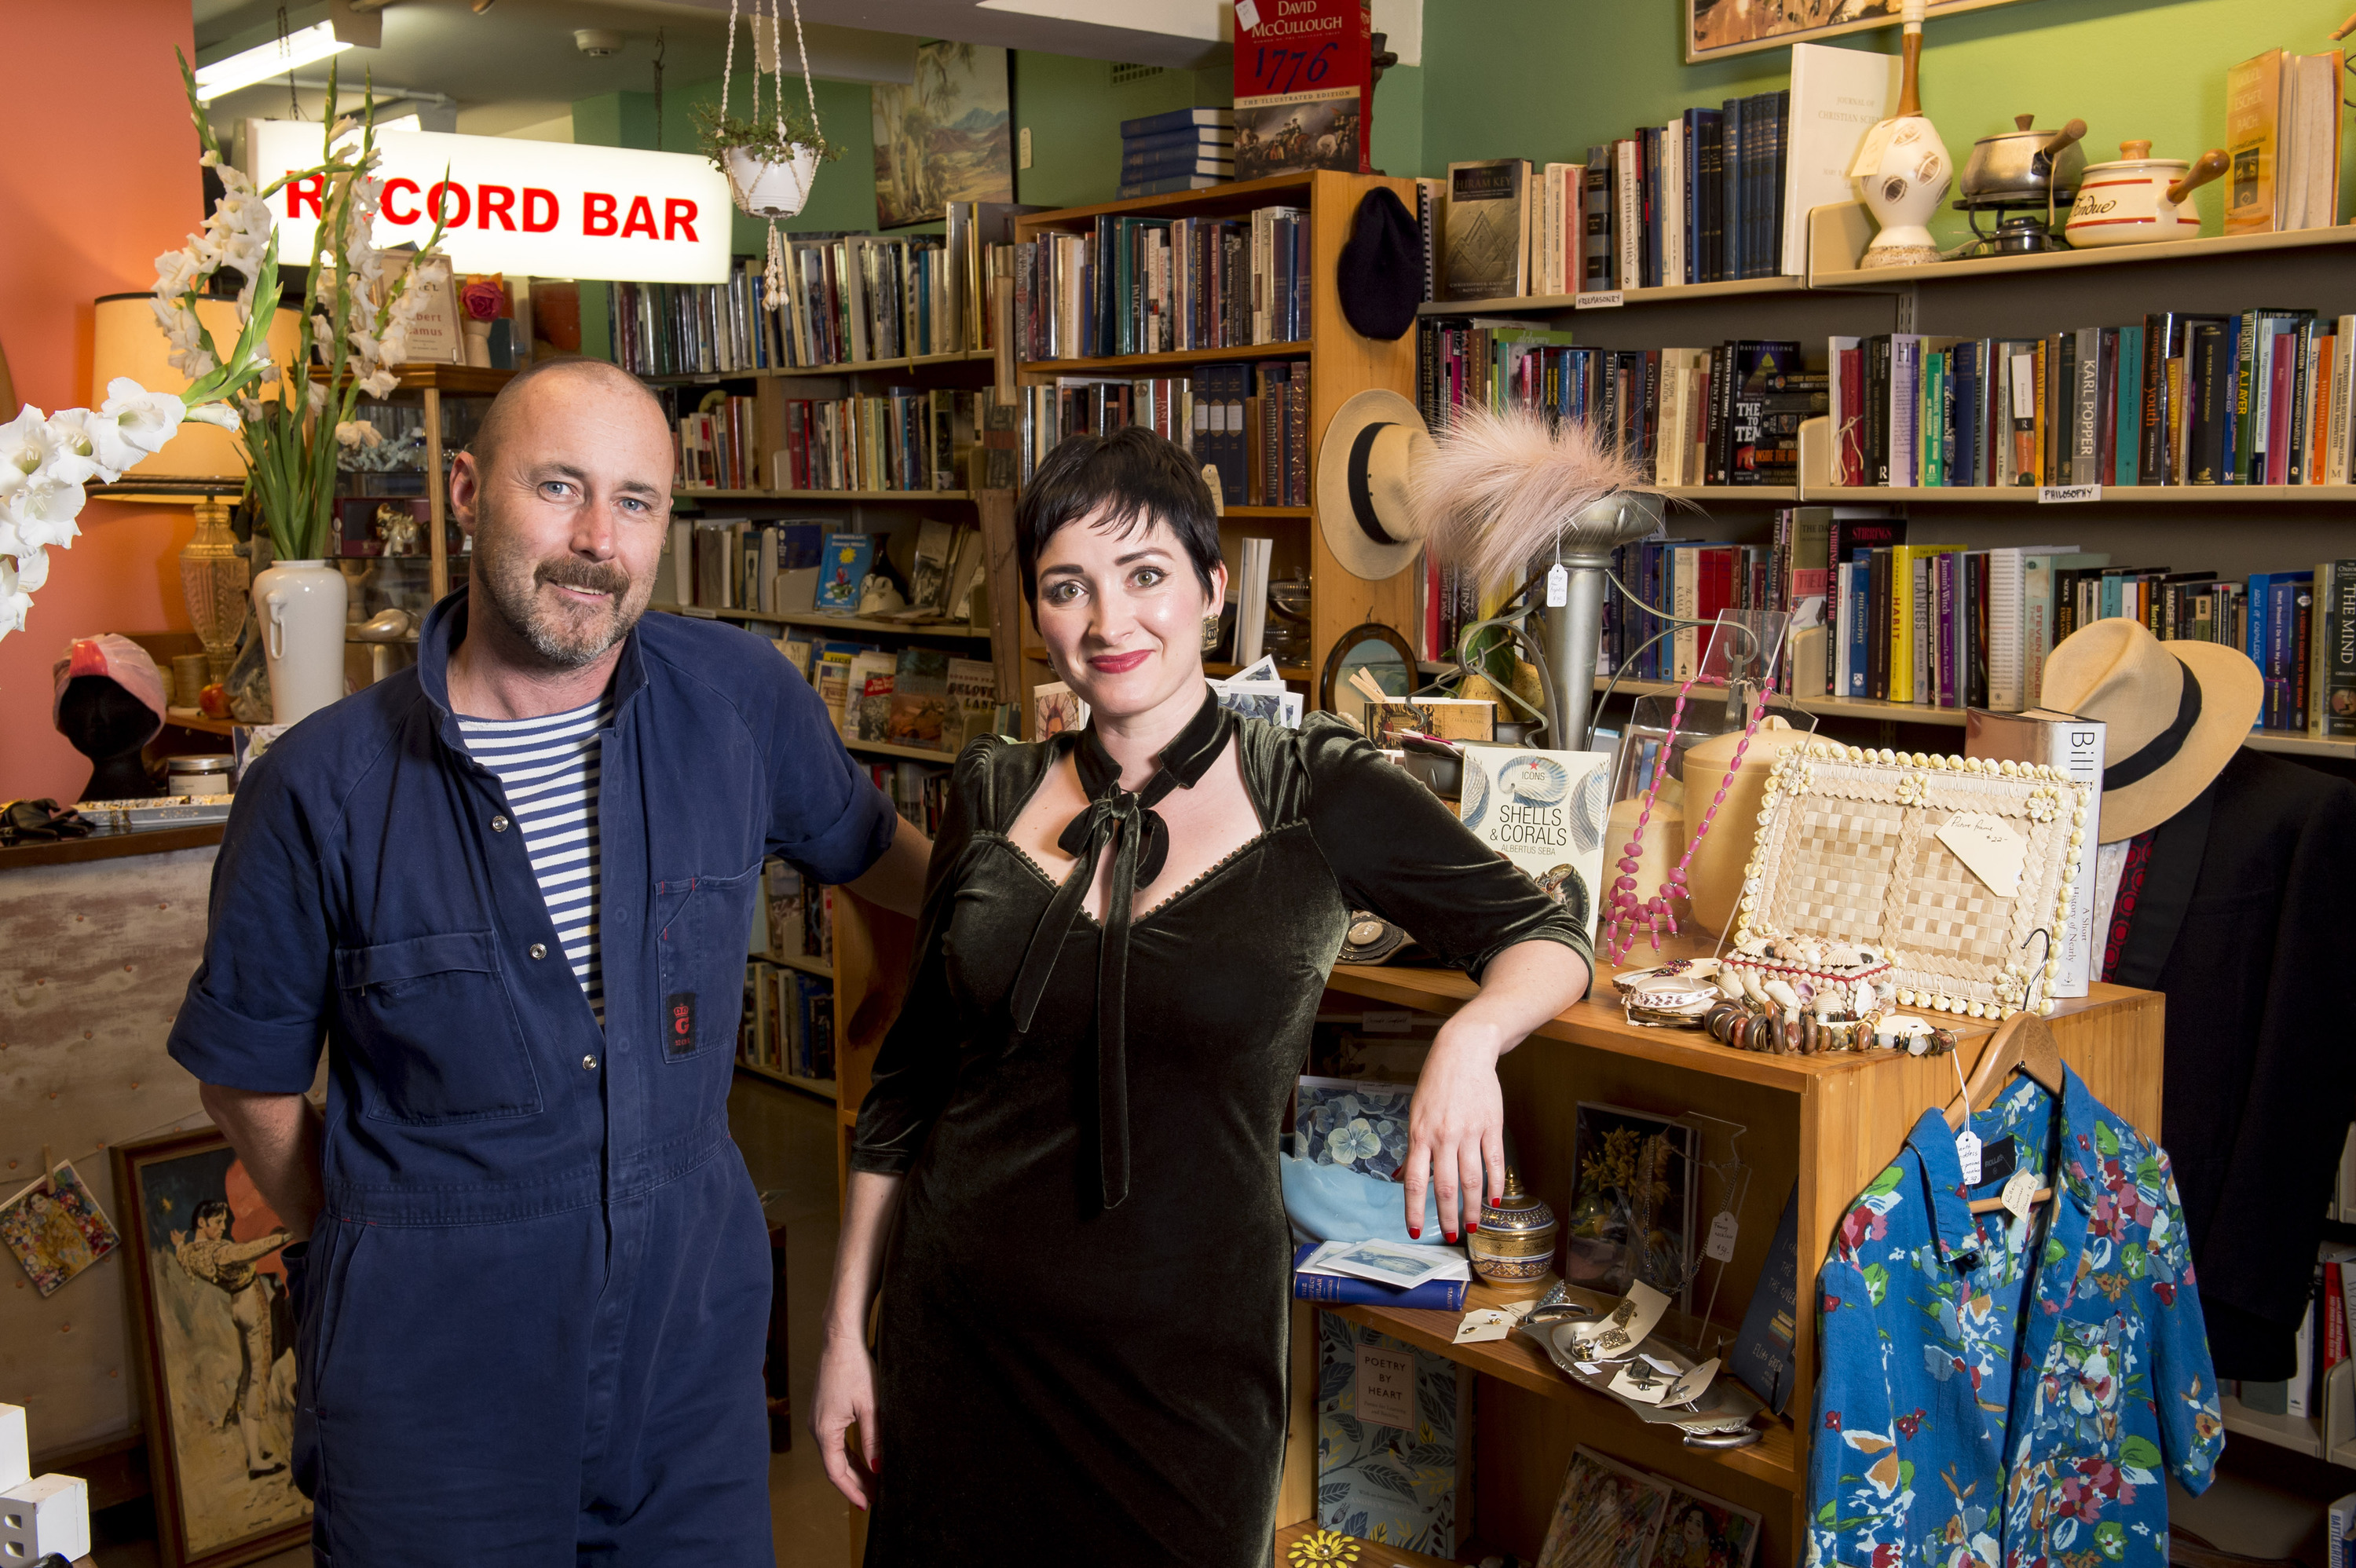 Tom Hespe (left) and Tamara Kennedy (right) standing in their Potts Point book, vintage and record store in Potts Point